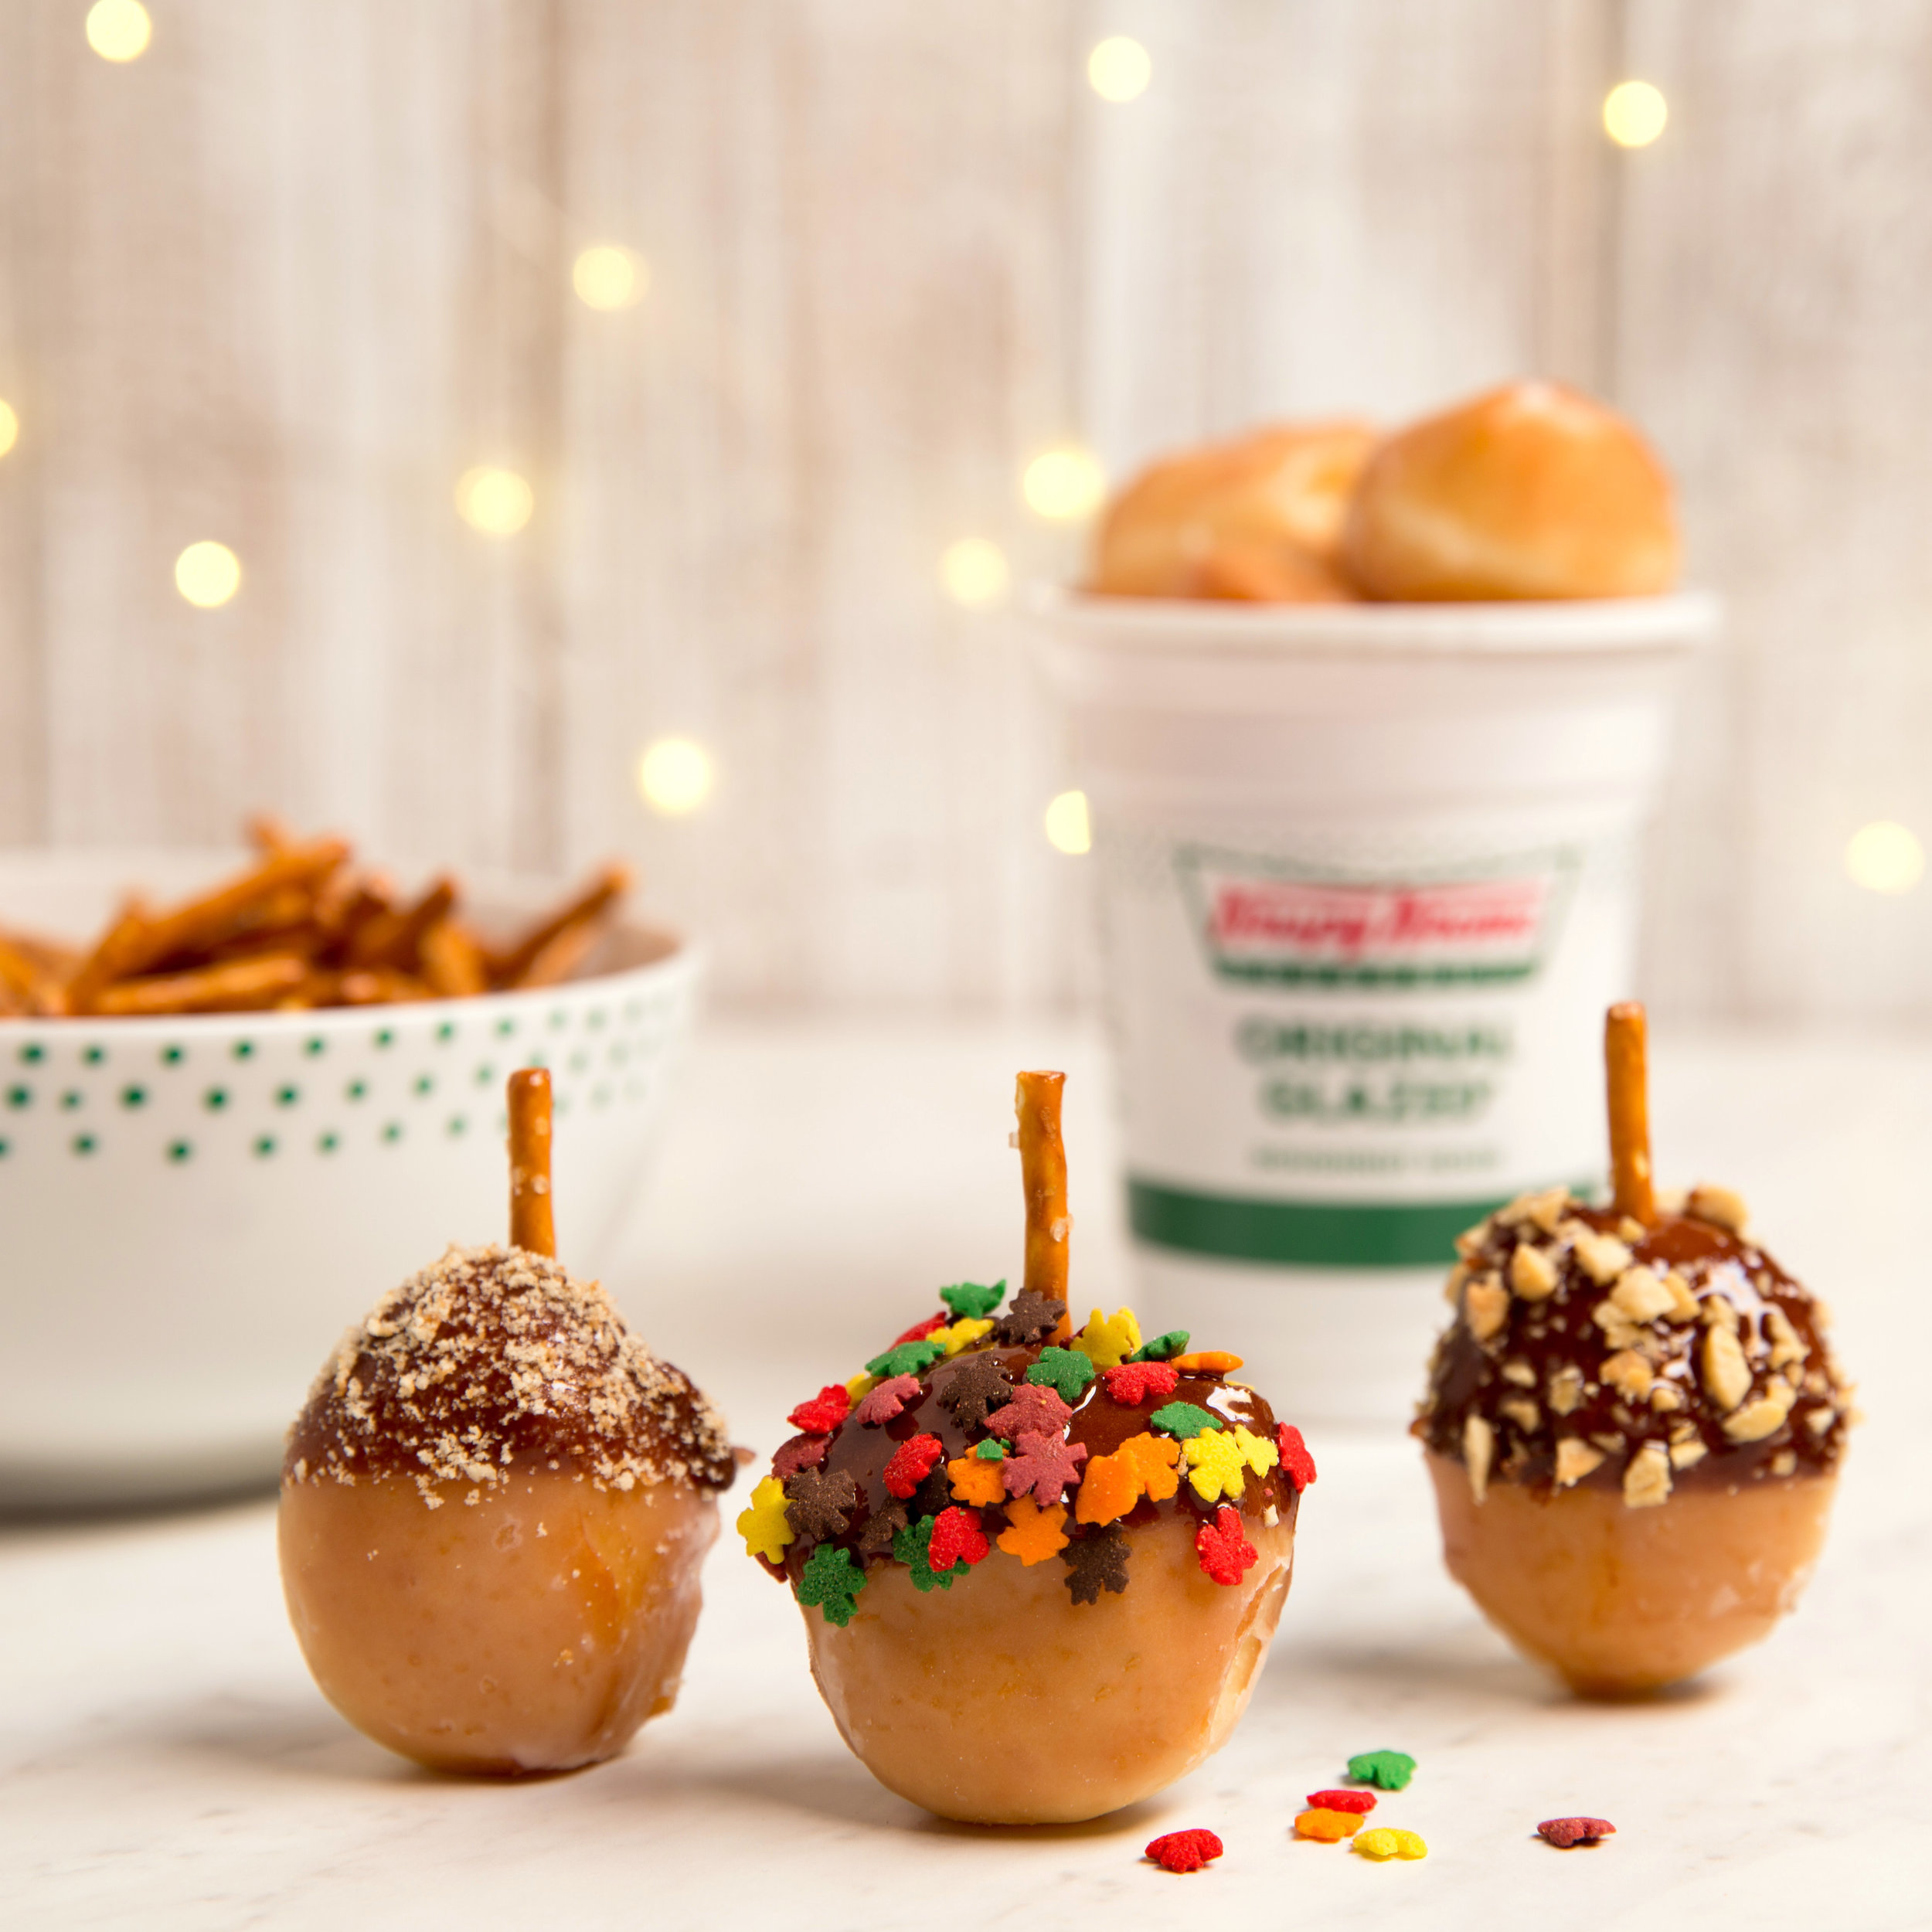 KrispyKreme_Holiday0115.jpg